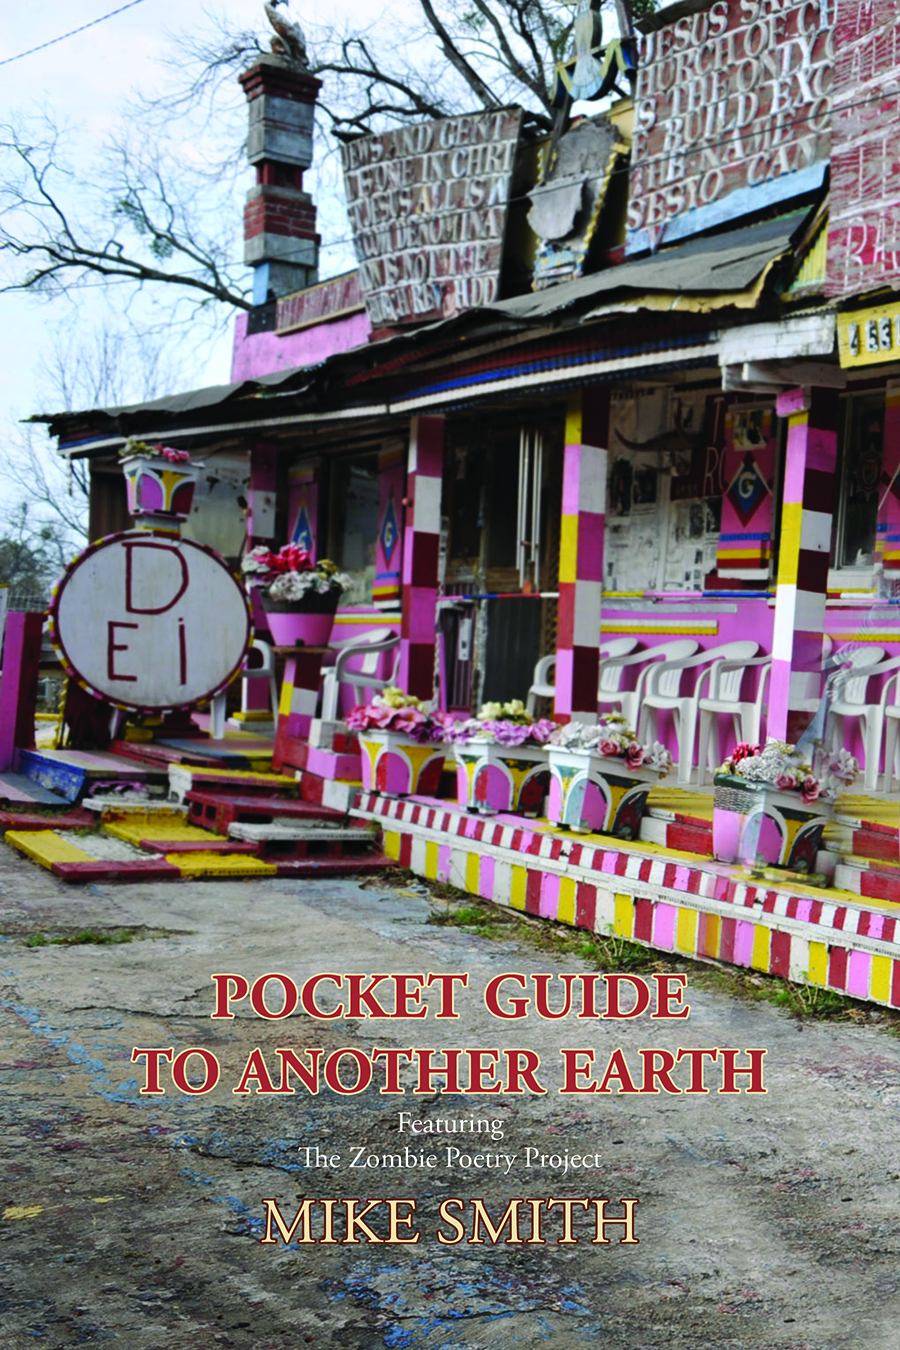 Pocket Guide to Another Earth